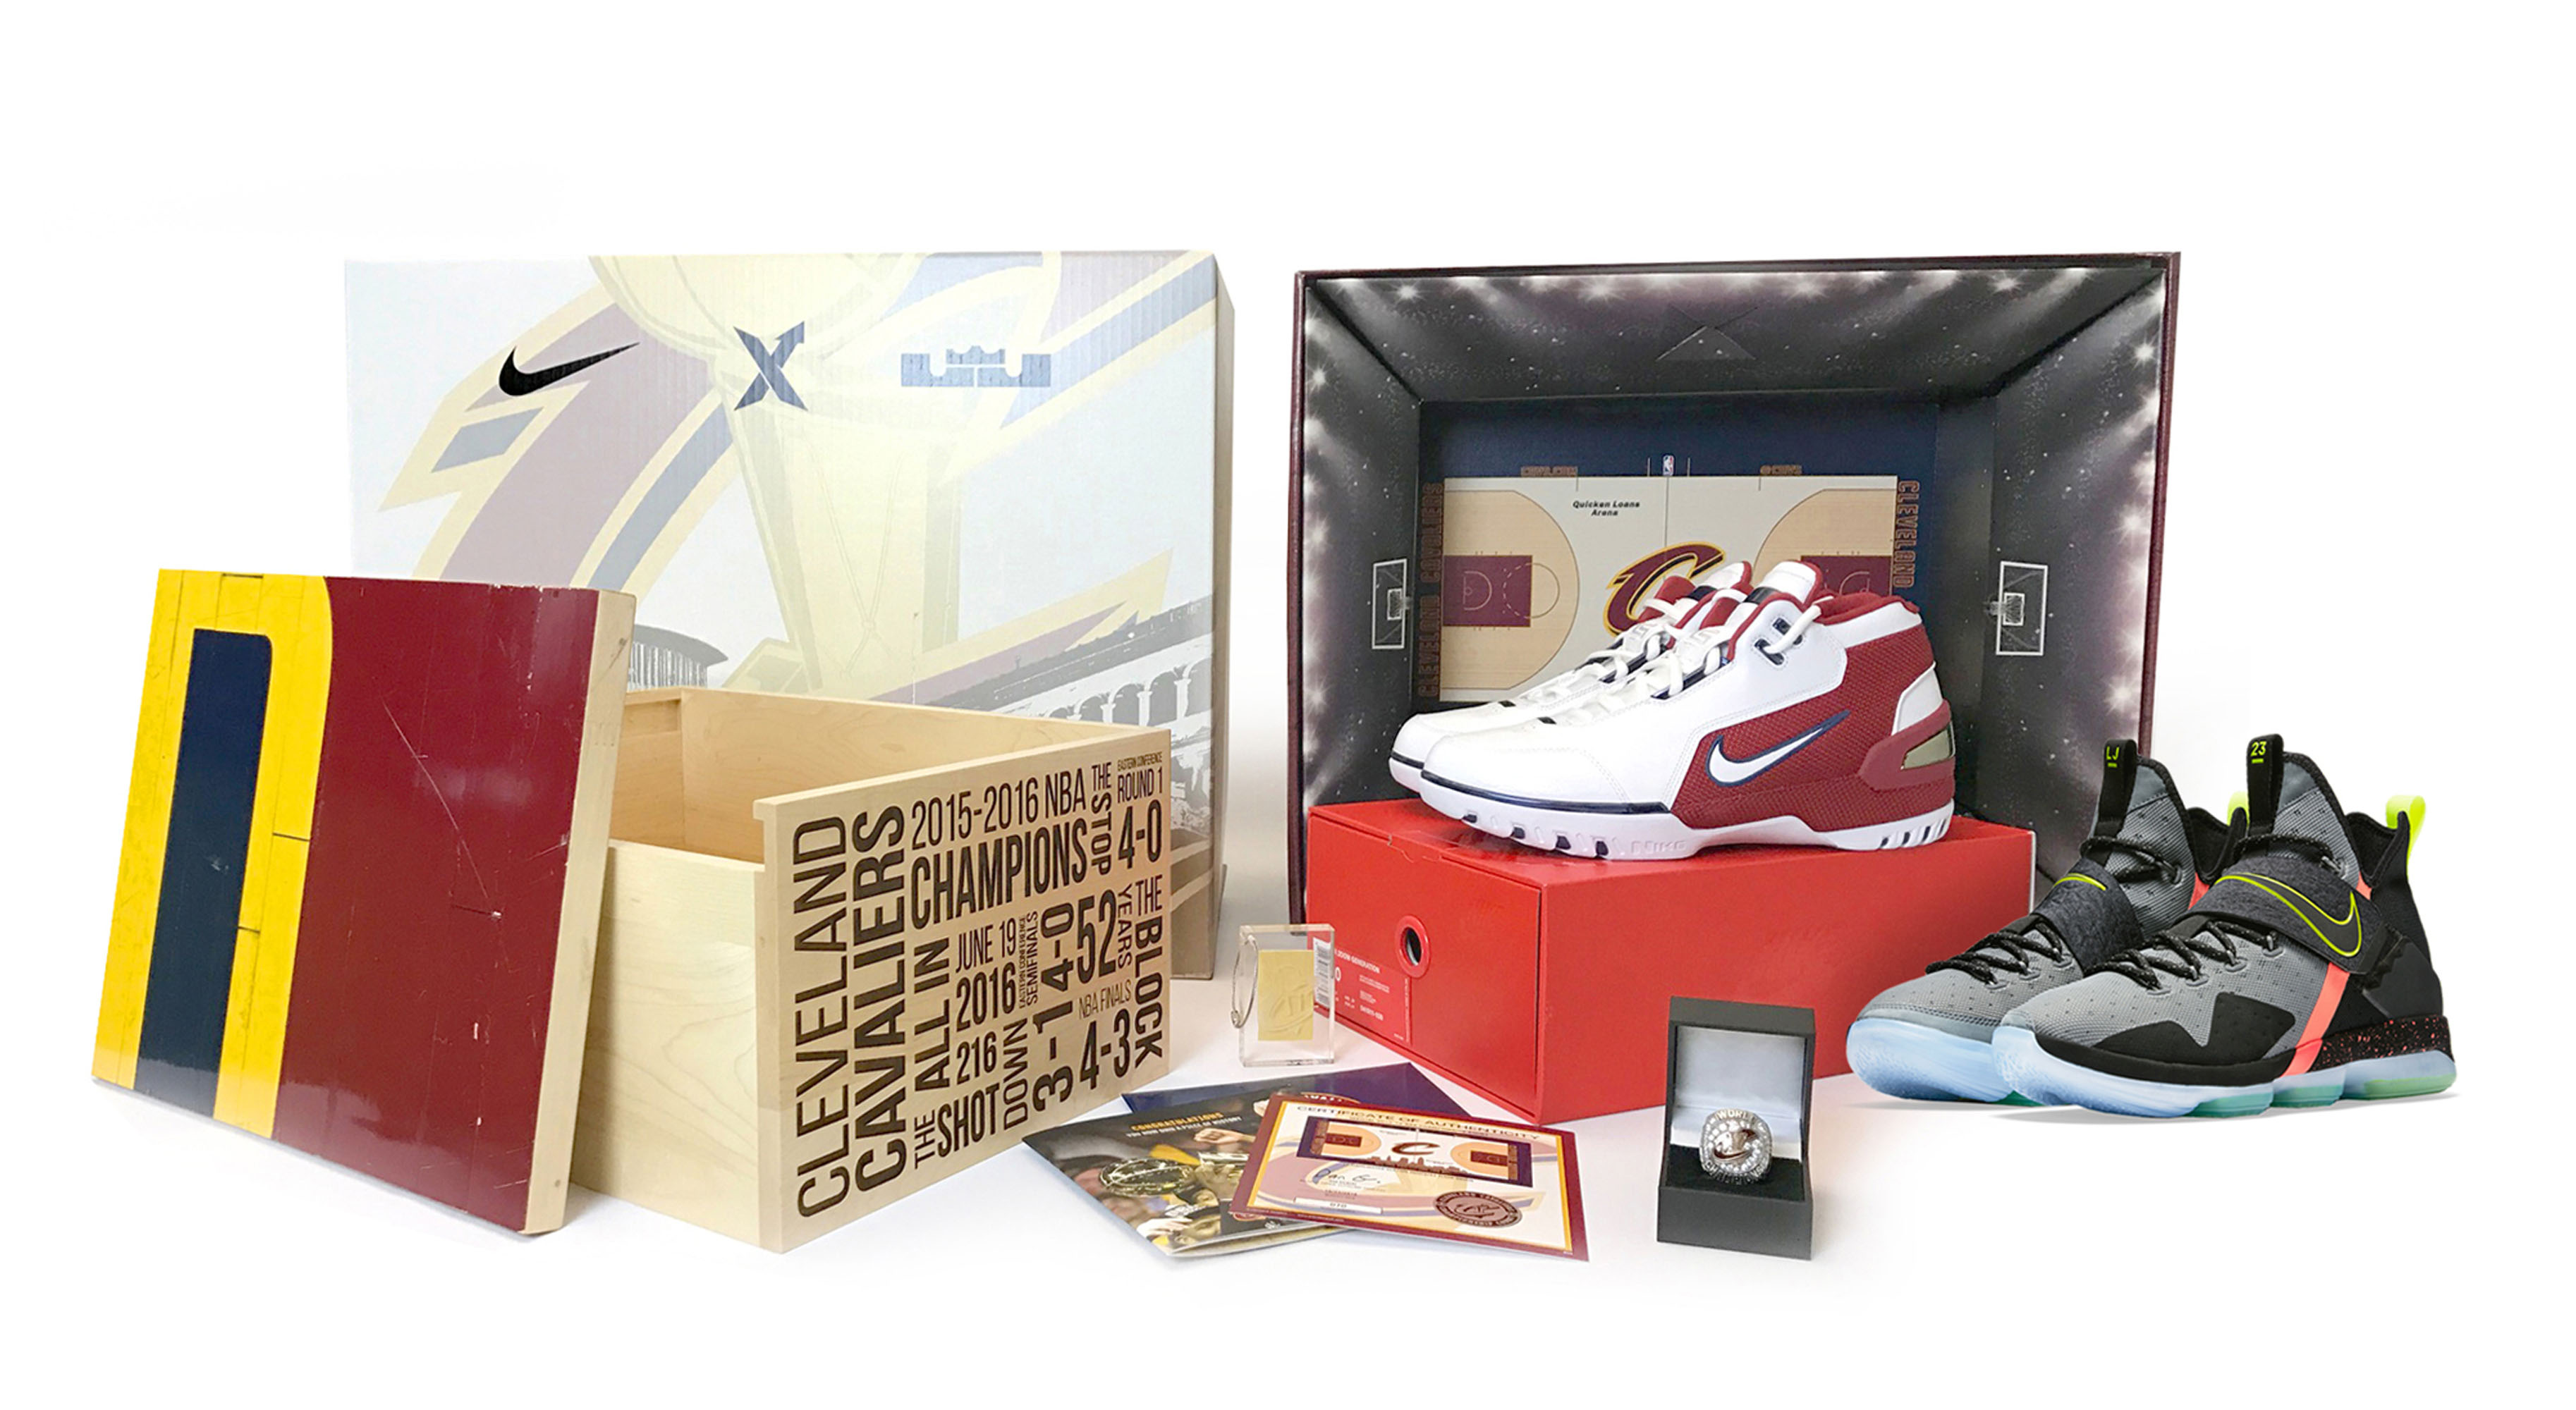 da1ca3ea Sneakers Auction Company Opens in London and Plans a Store